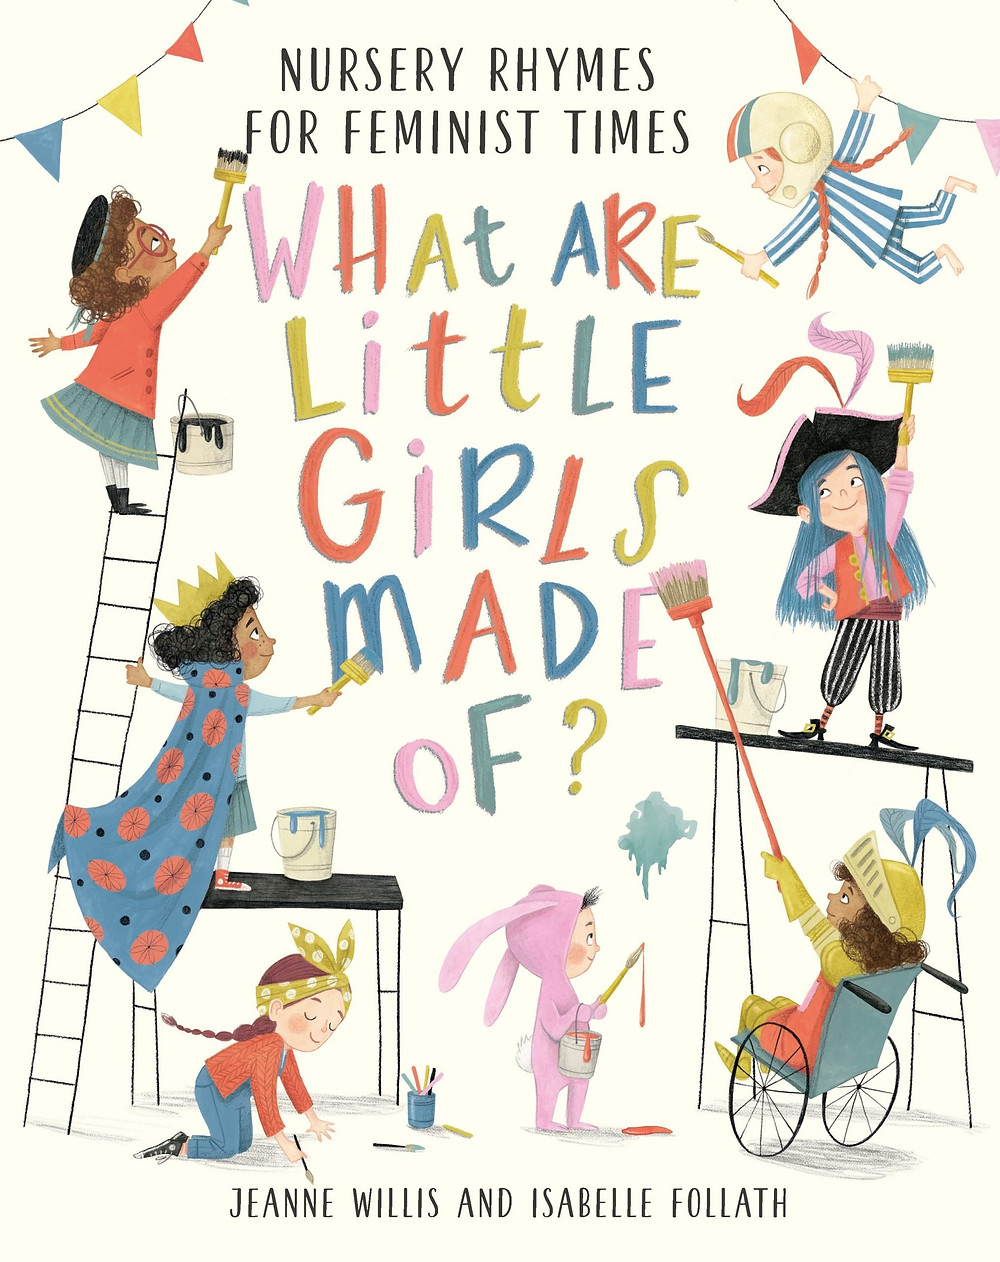 What are little girls made of? by Jeanne Willis and Isabelle Follath